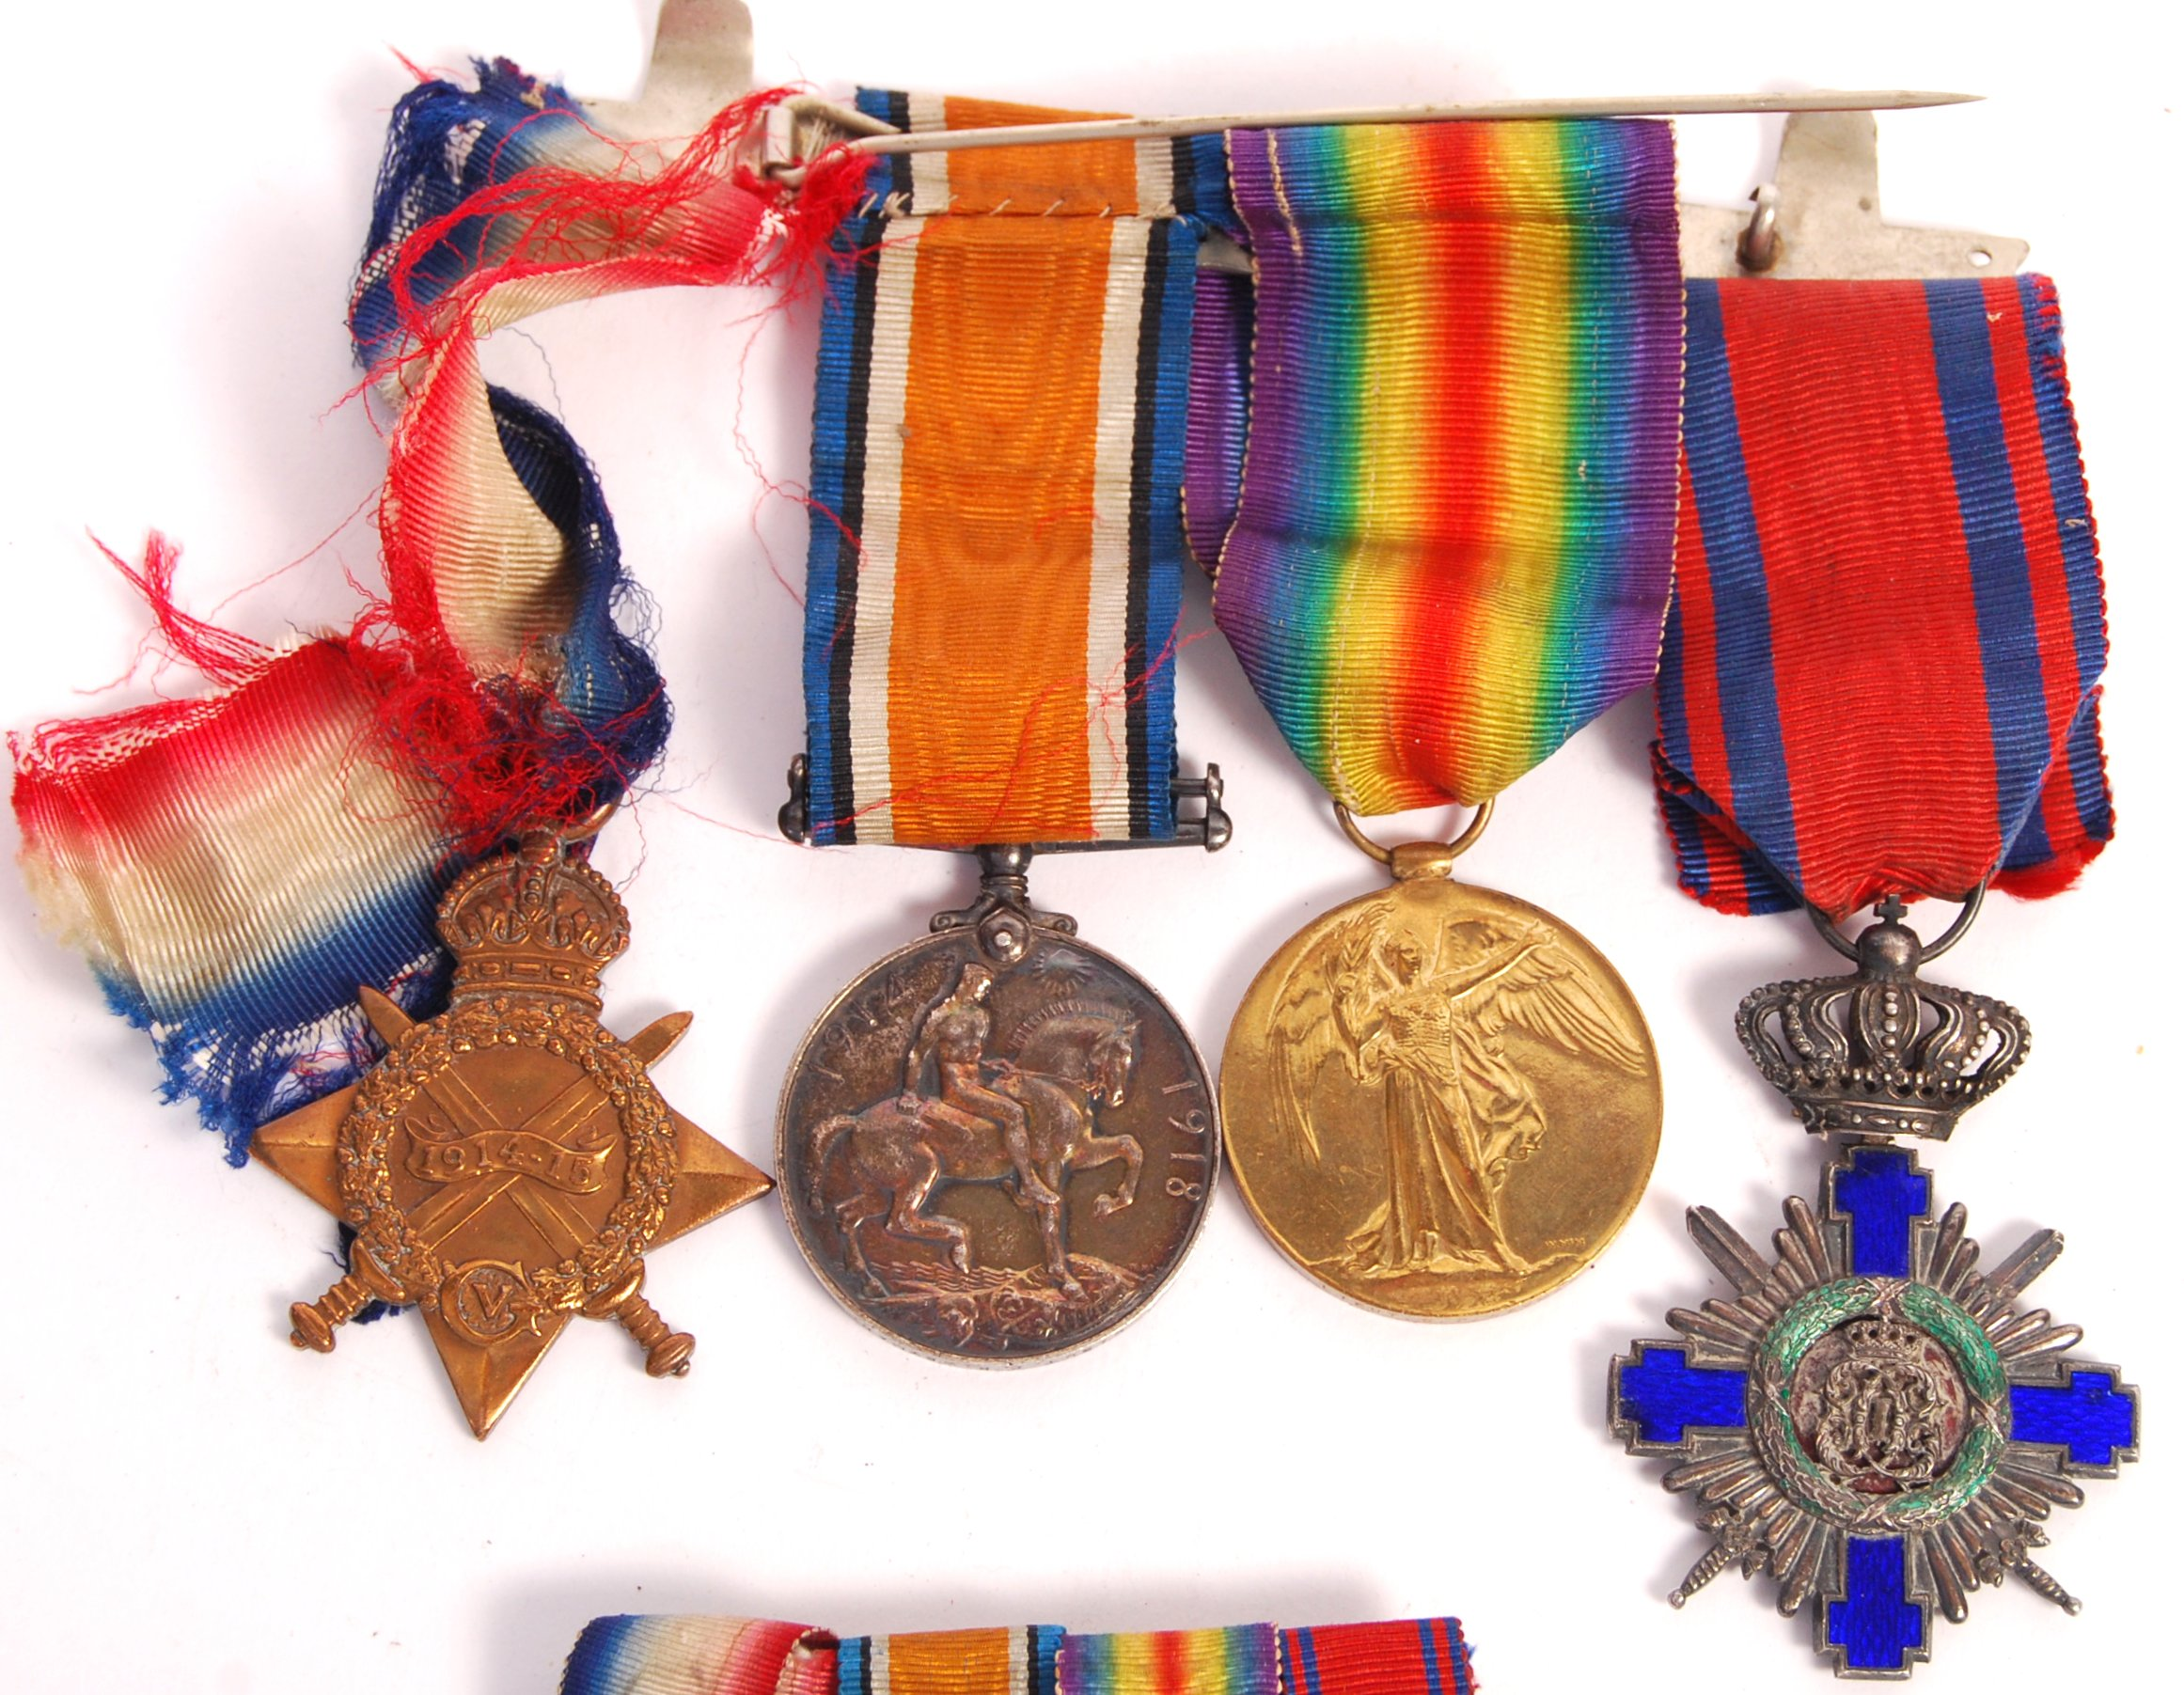 WWI FIRST WORLD WAR MEDAL GROUP - ORDER OF THE STAR OF ROMANIA - Image 2 of 8